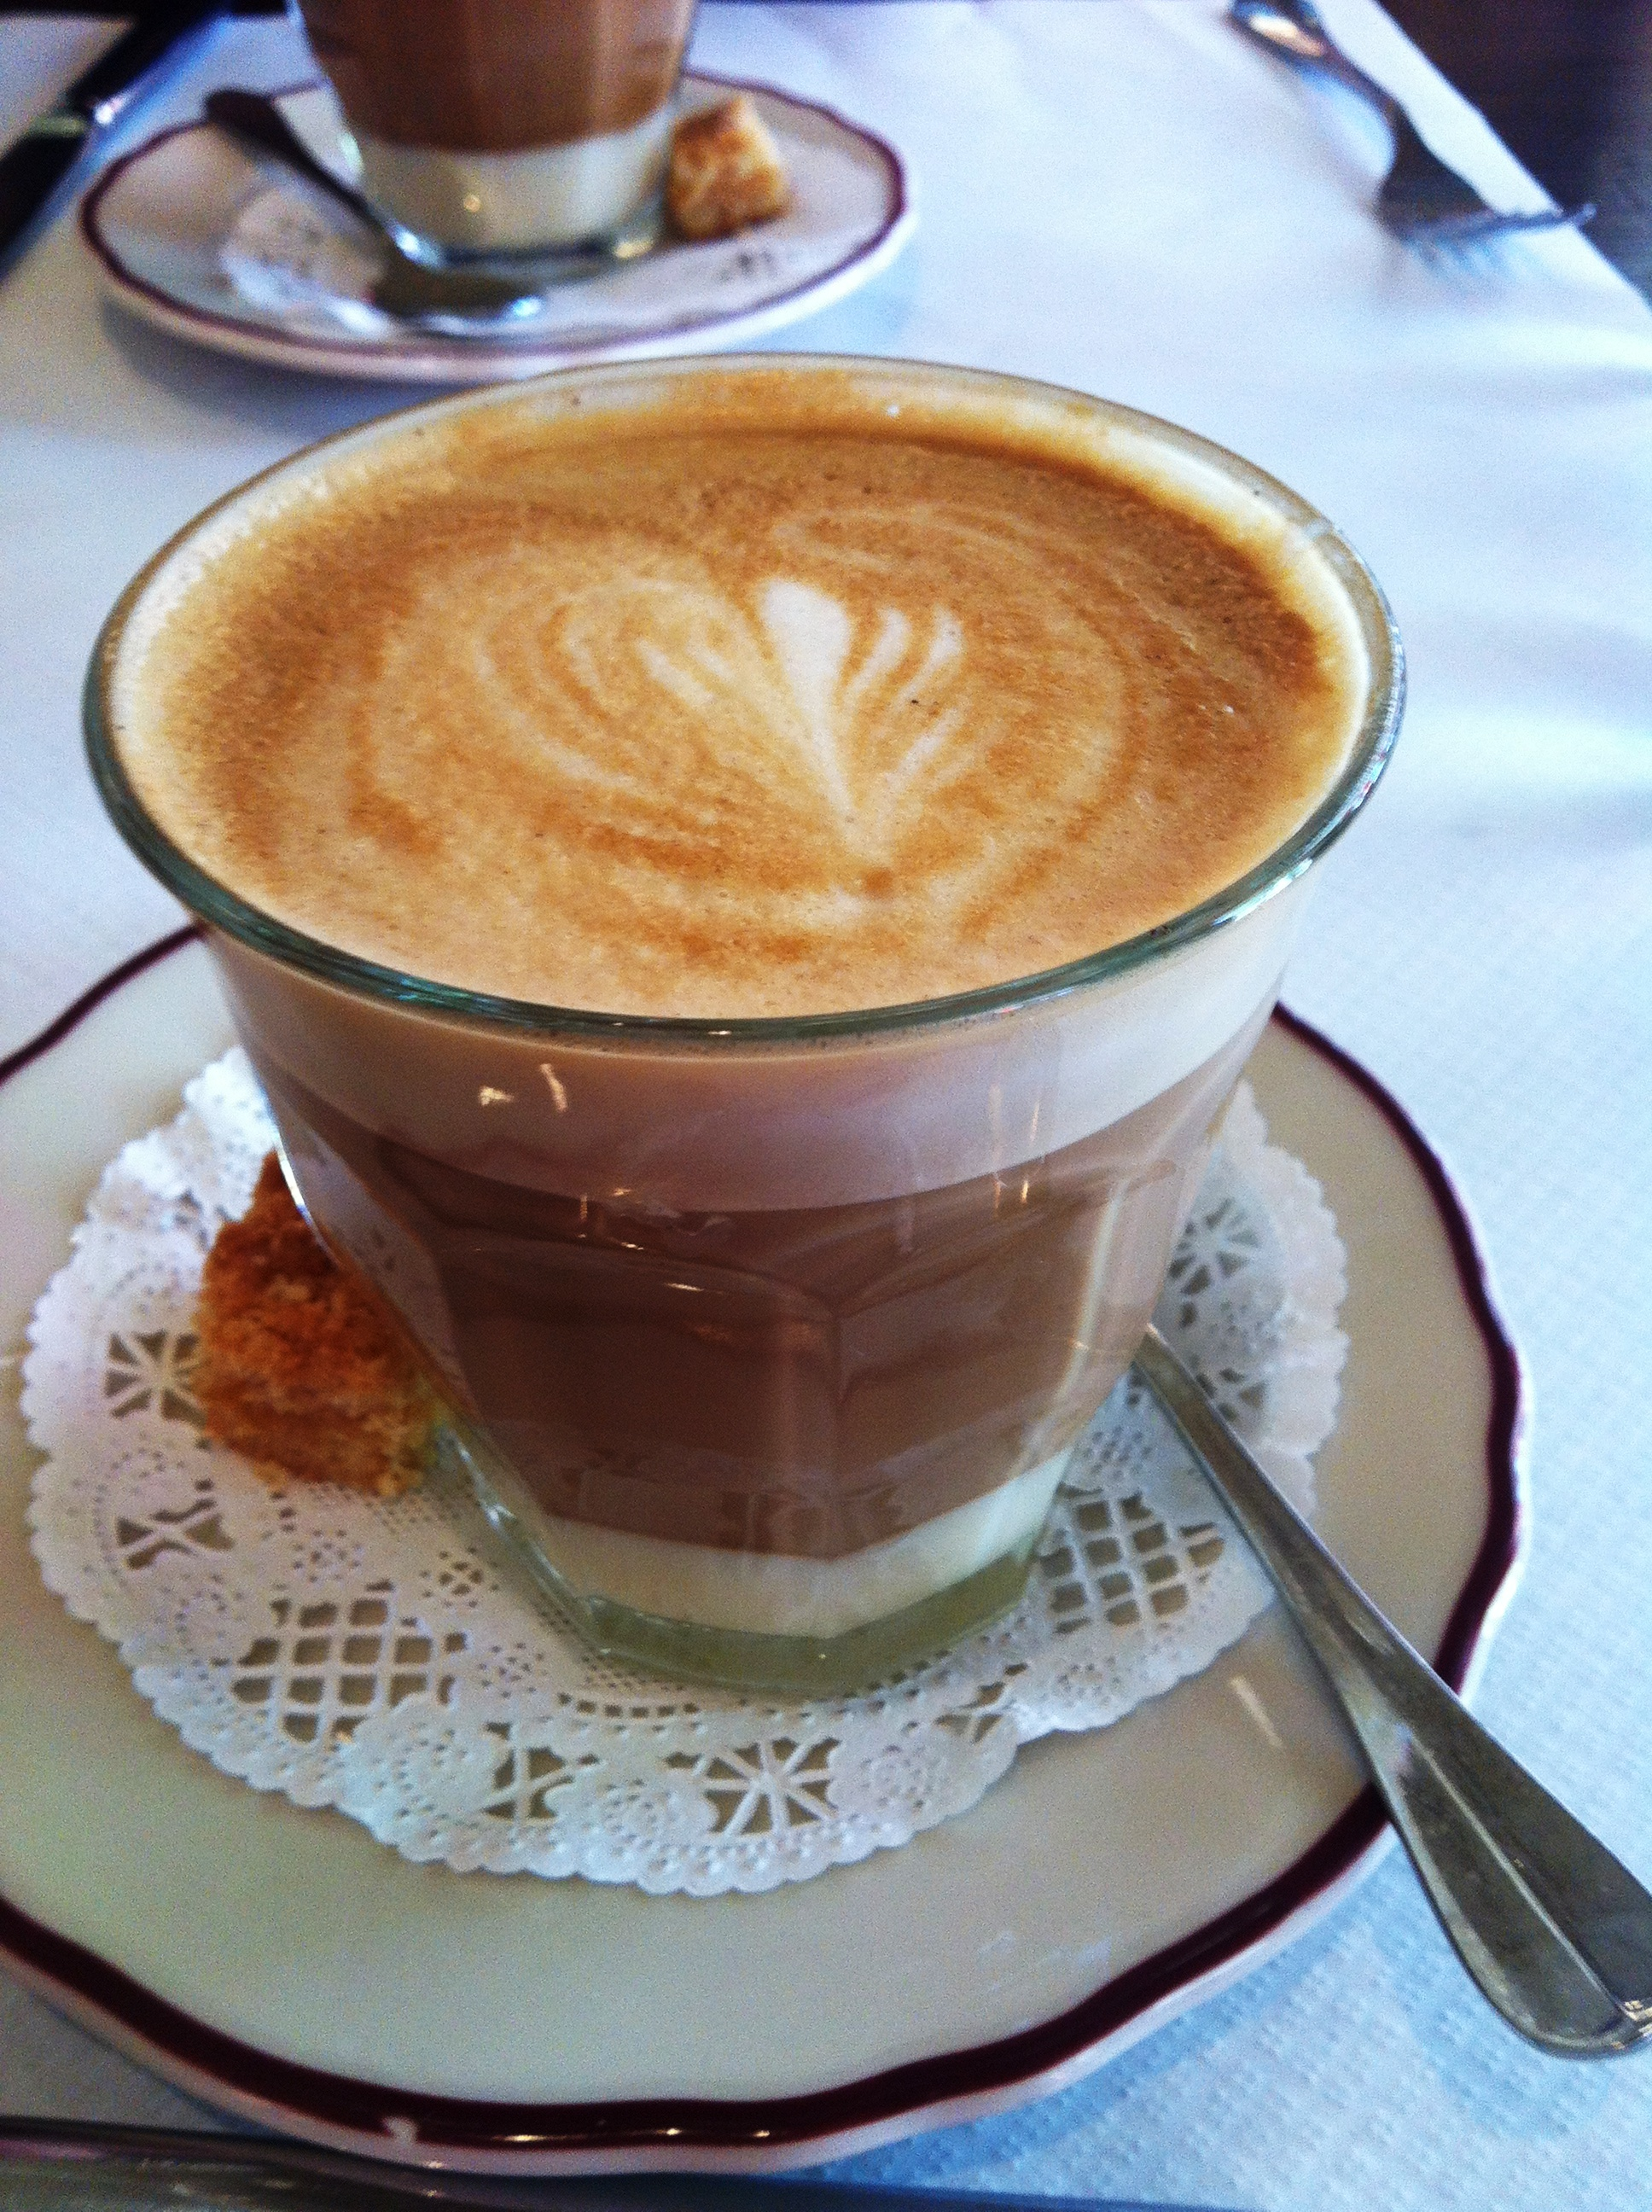 Vietnamese-style coffee at Le Diplomate (Photo: Lanna Nguyen/DC on Heels)